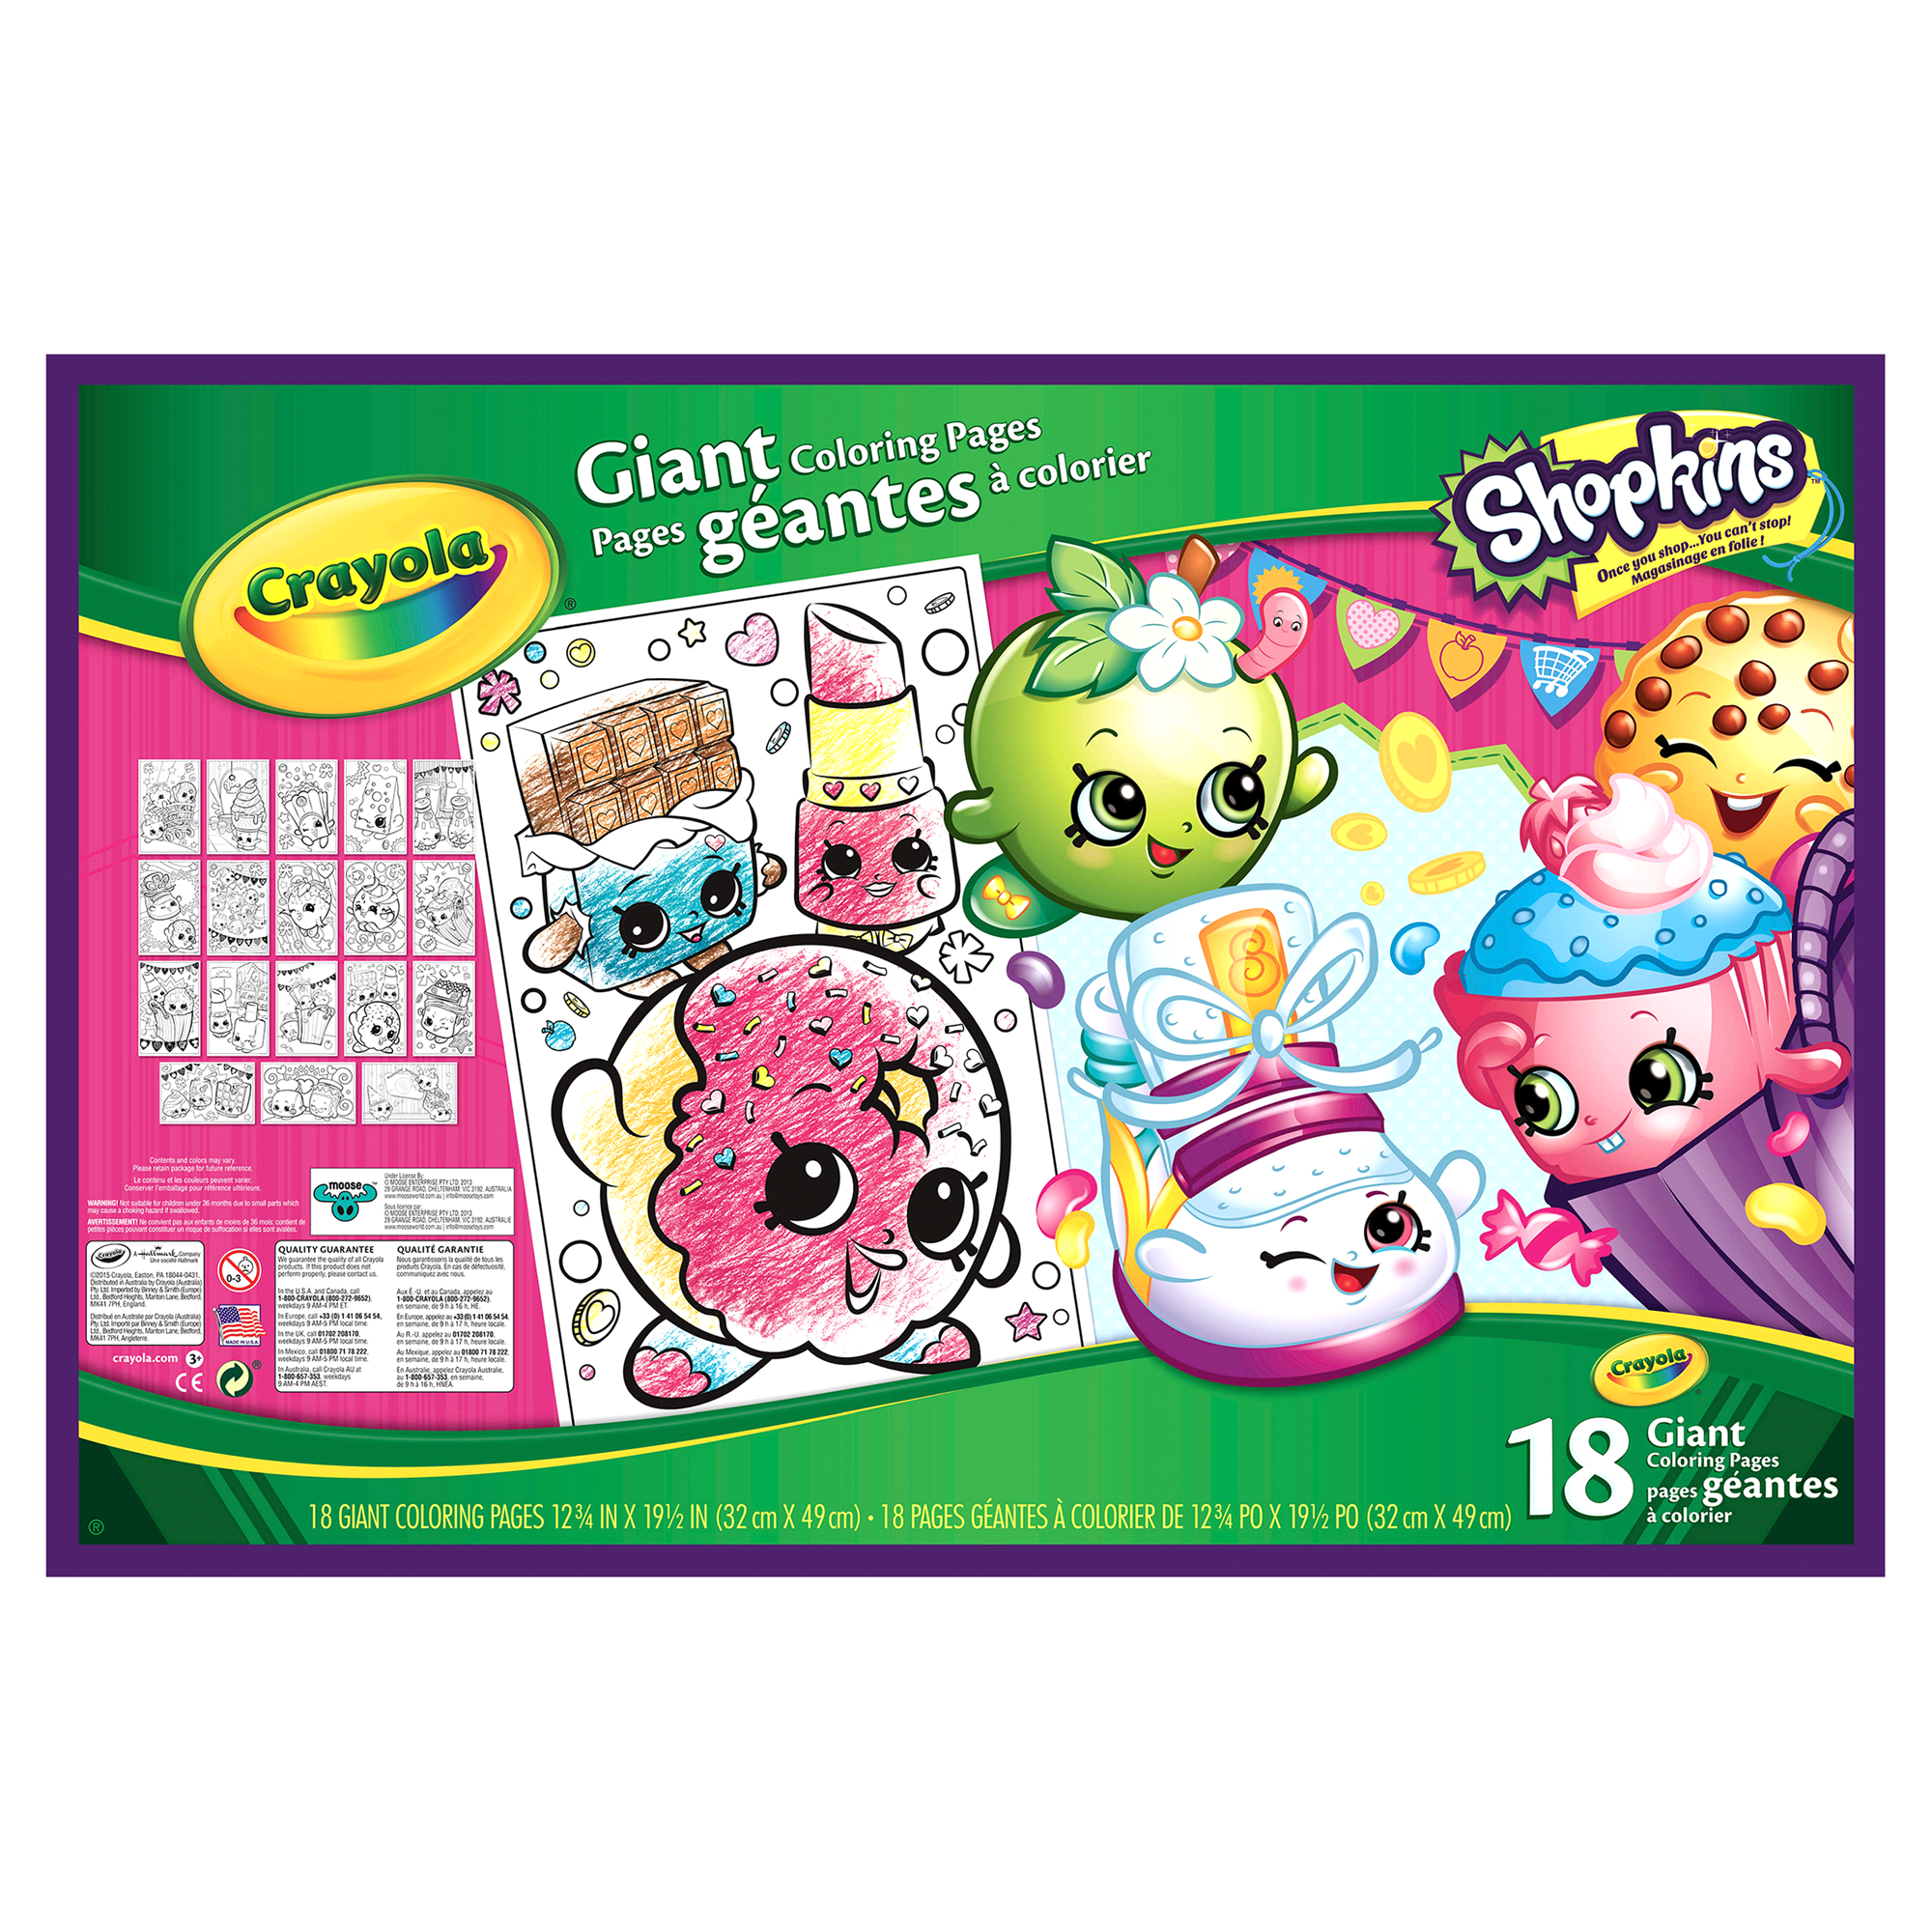 Shopkins Crayola Giant Coloring Pages